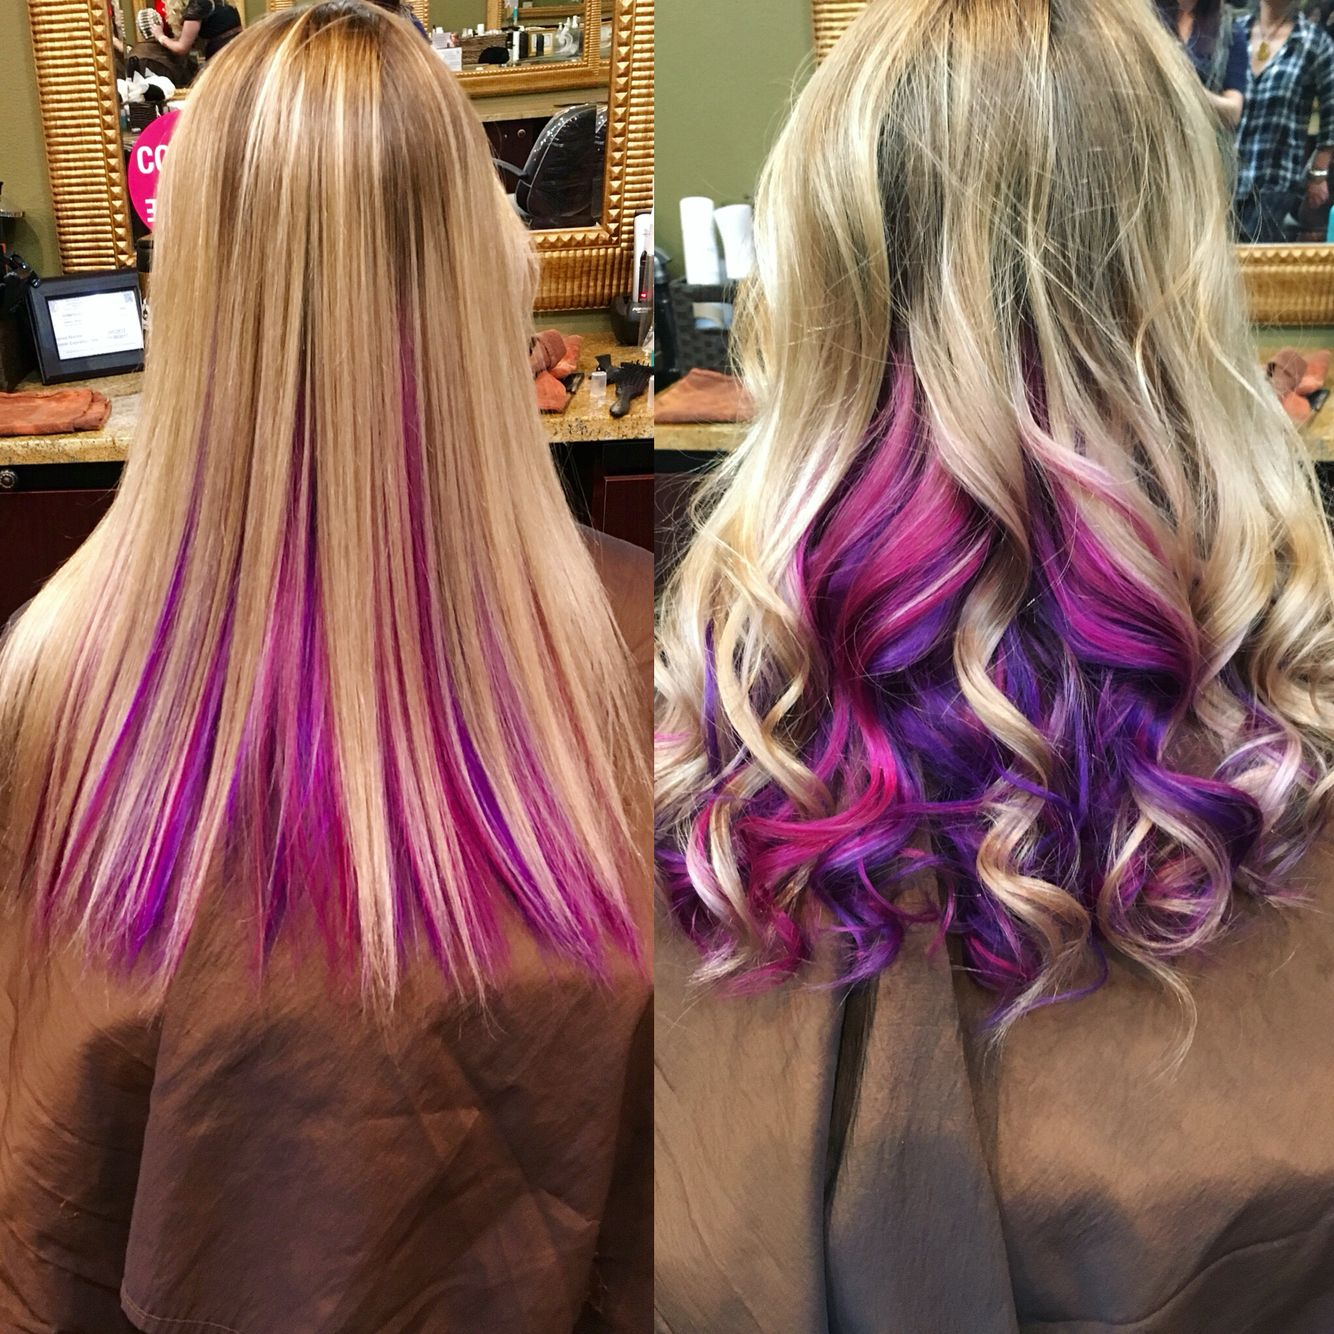 This Where The Fun Colors Aren T Super Evident Until You Curl Your Hair Peekaboo Hair Kids Hair Color Hair Color Purple